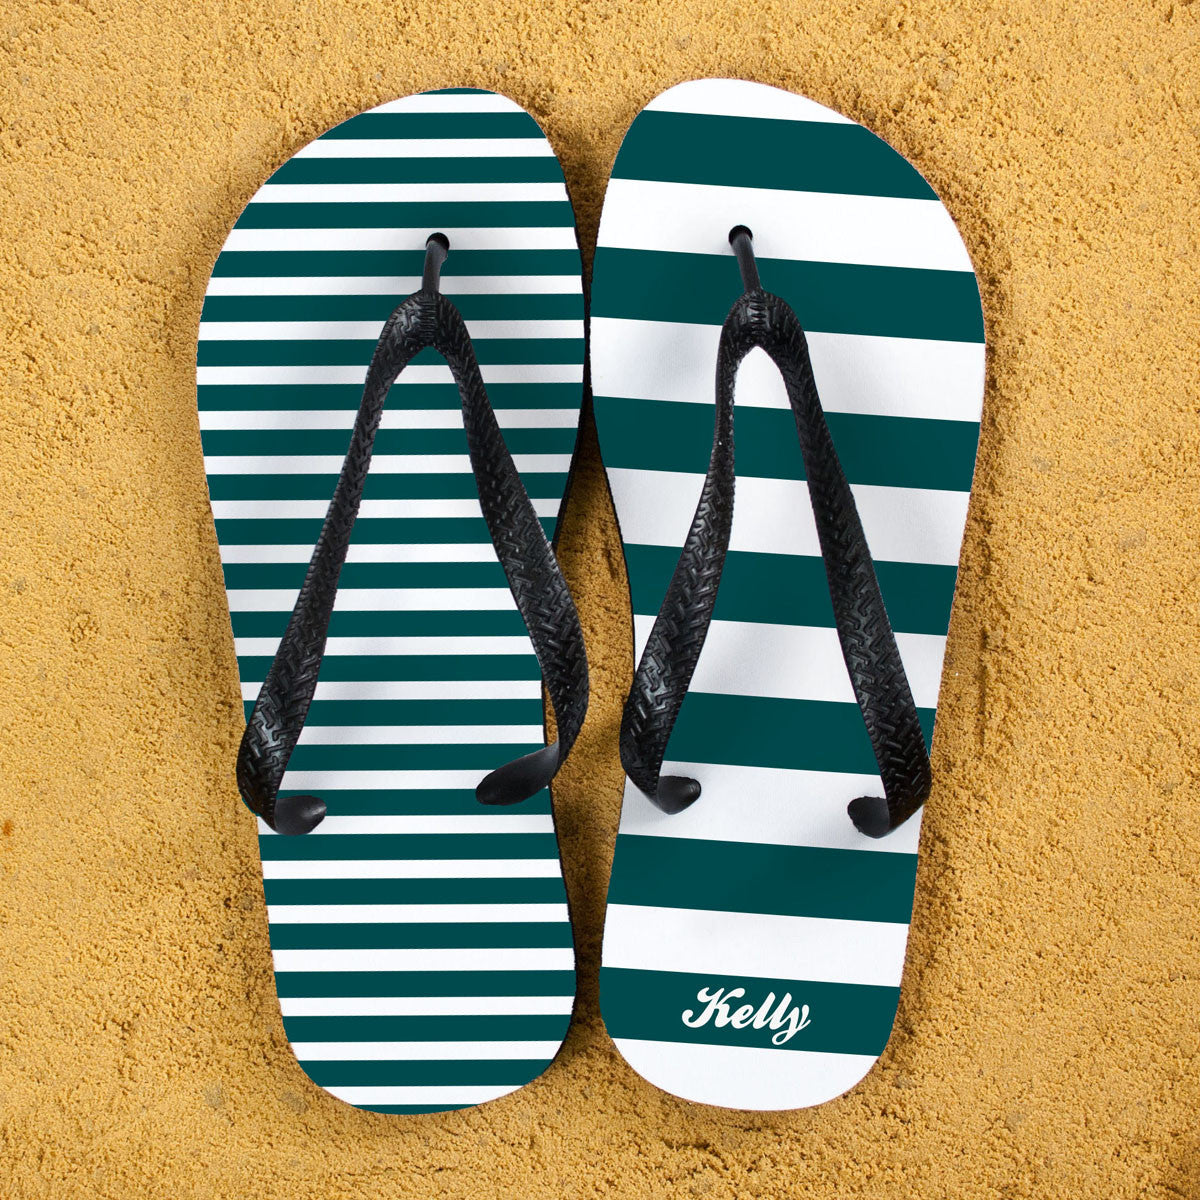 6b9ff4113ff21 ... Striped Personalised Flip Flops - Luxe Gift Store - 5